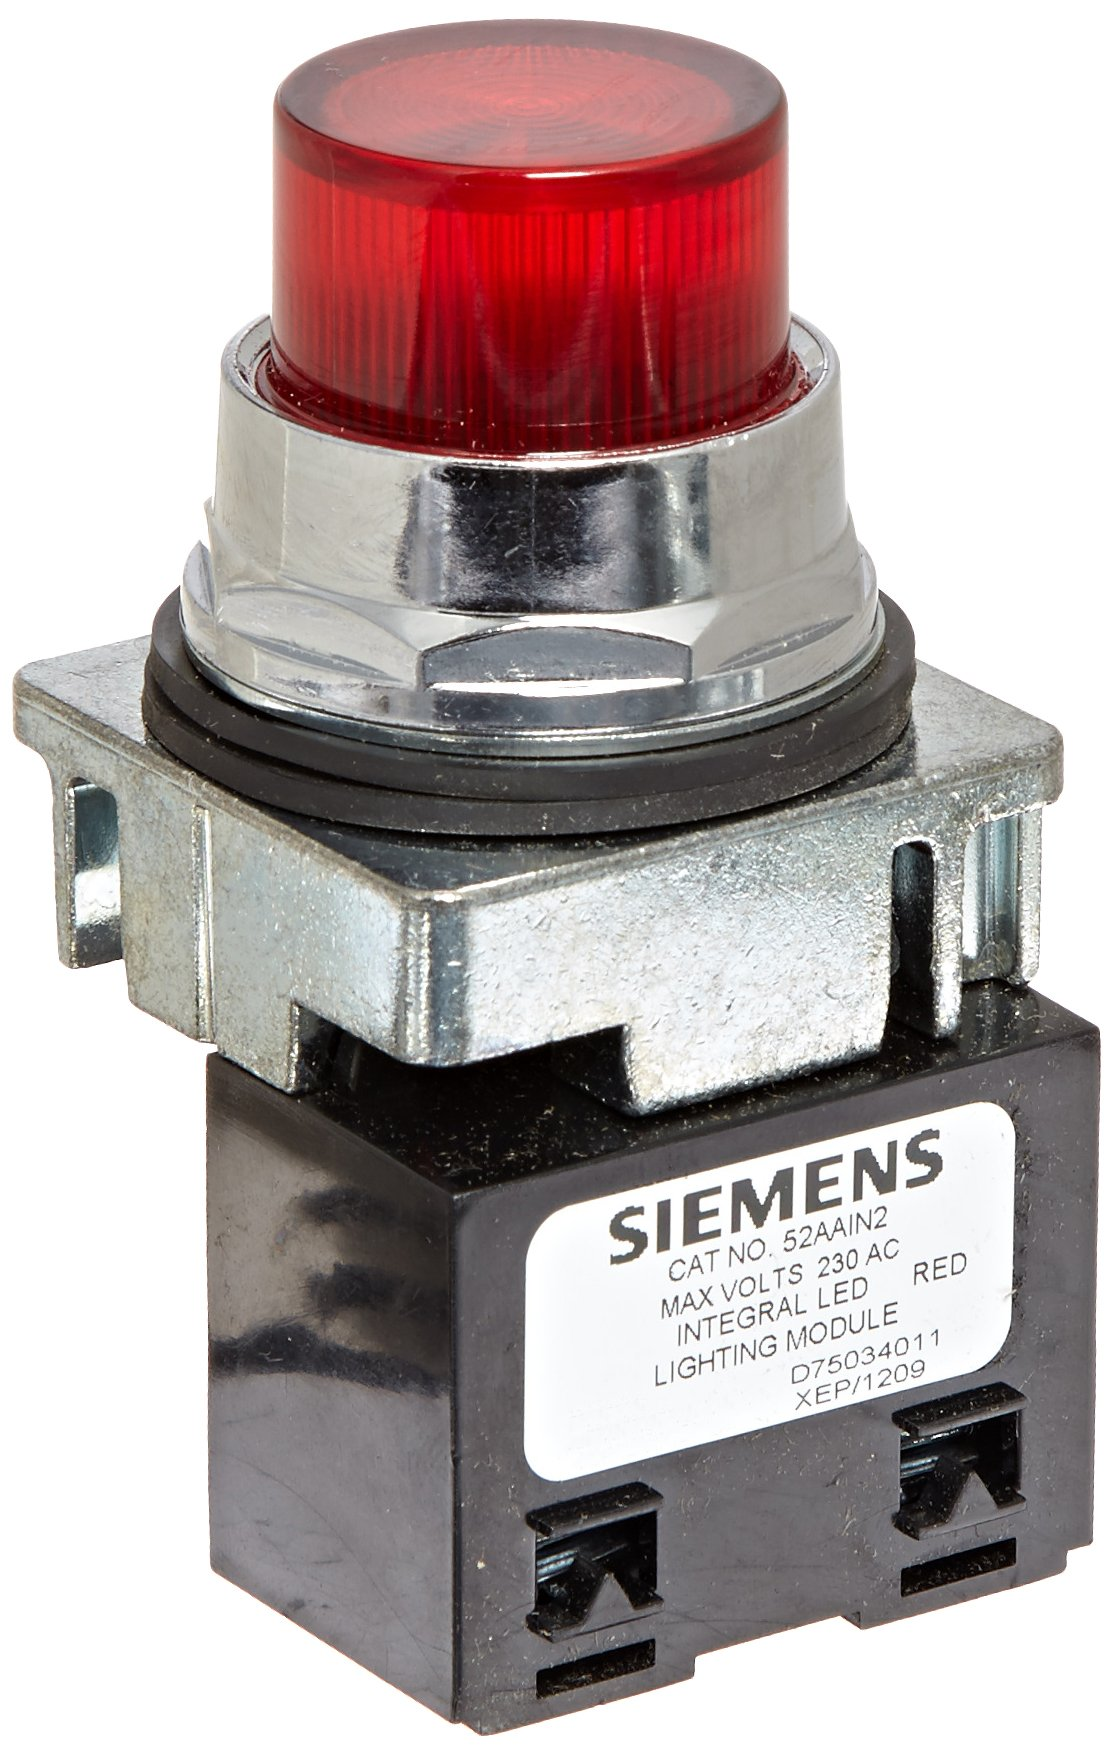 Siemens 52PL4N2 Heavy Duty Pilot Light, Water and Oil Tight, Plastic Lens, Integrated LED Module, Red, 240VAC Voltage